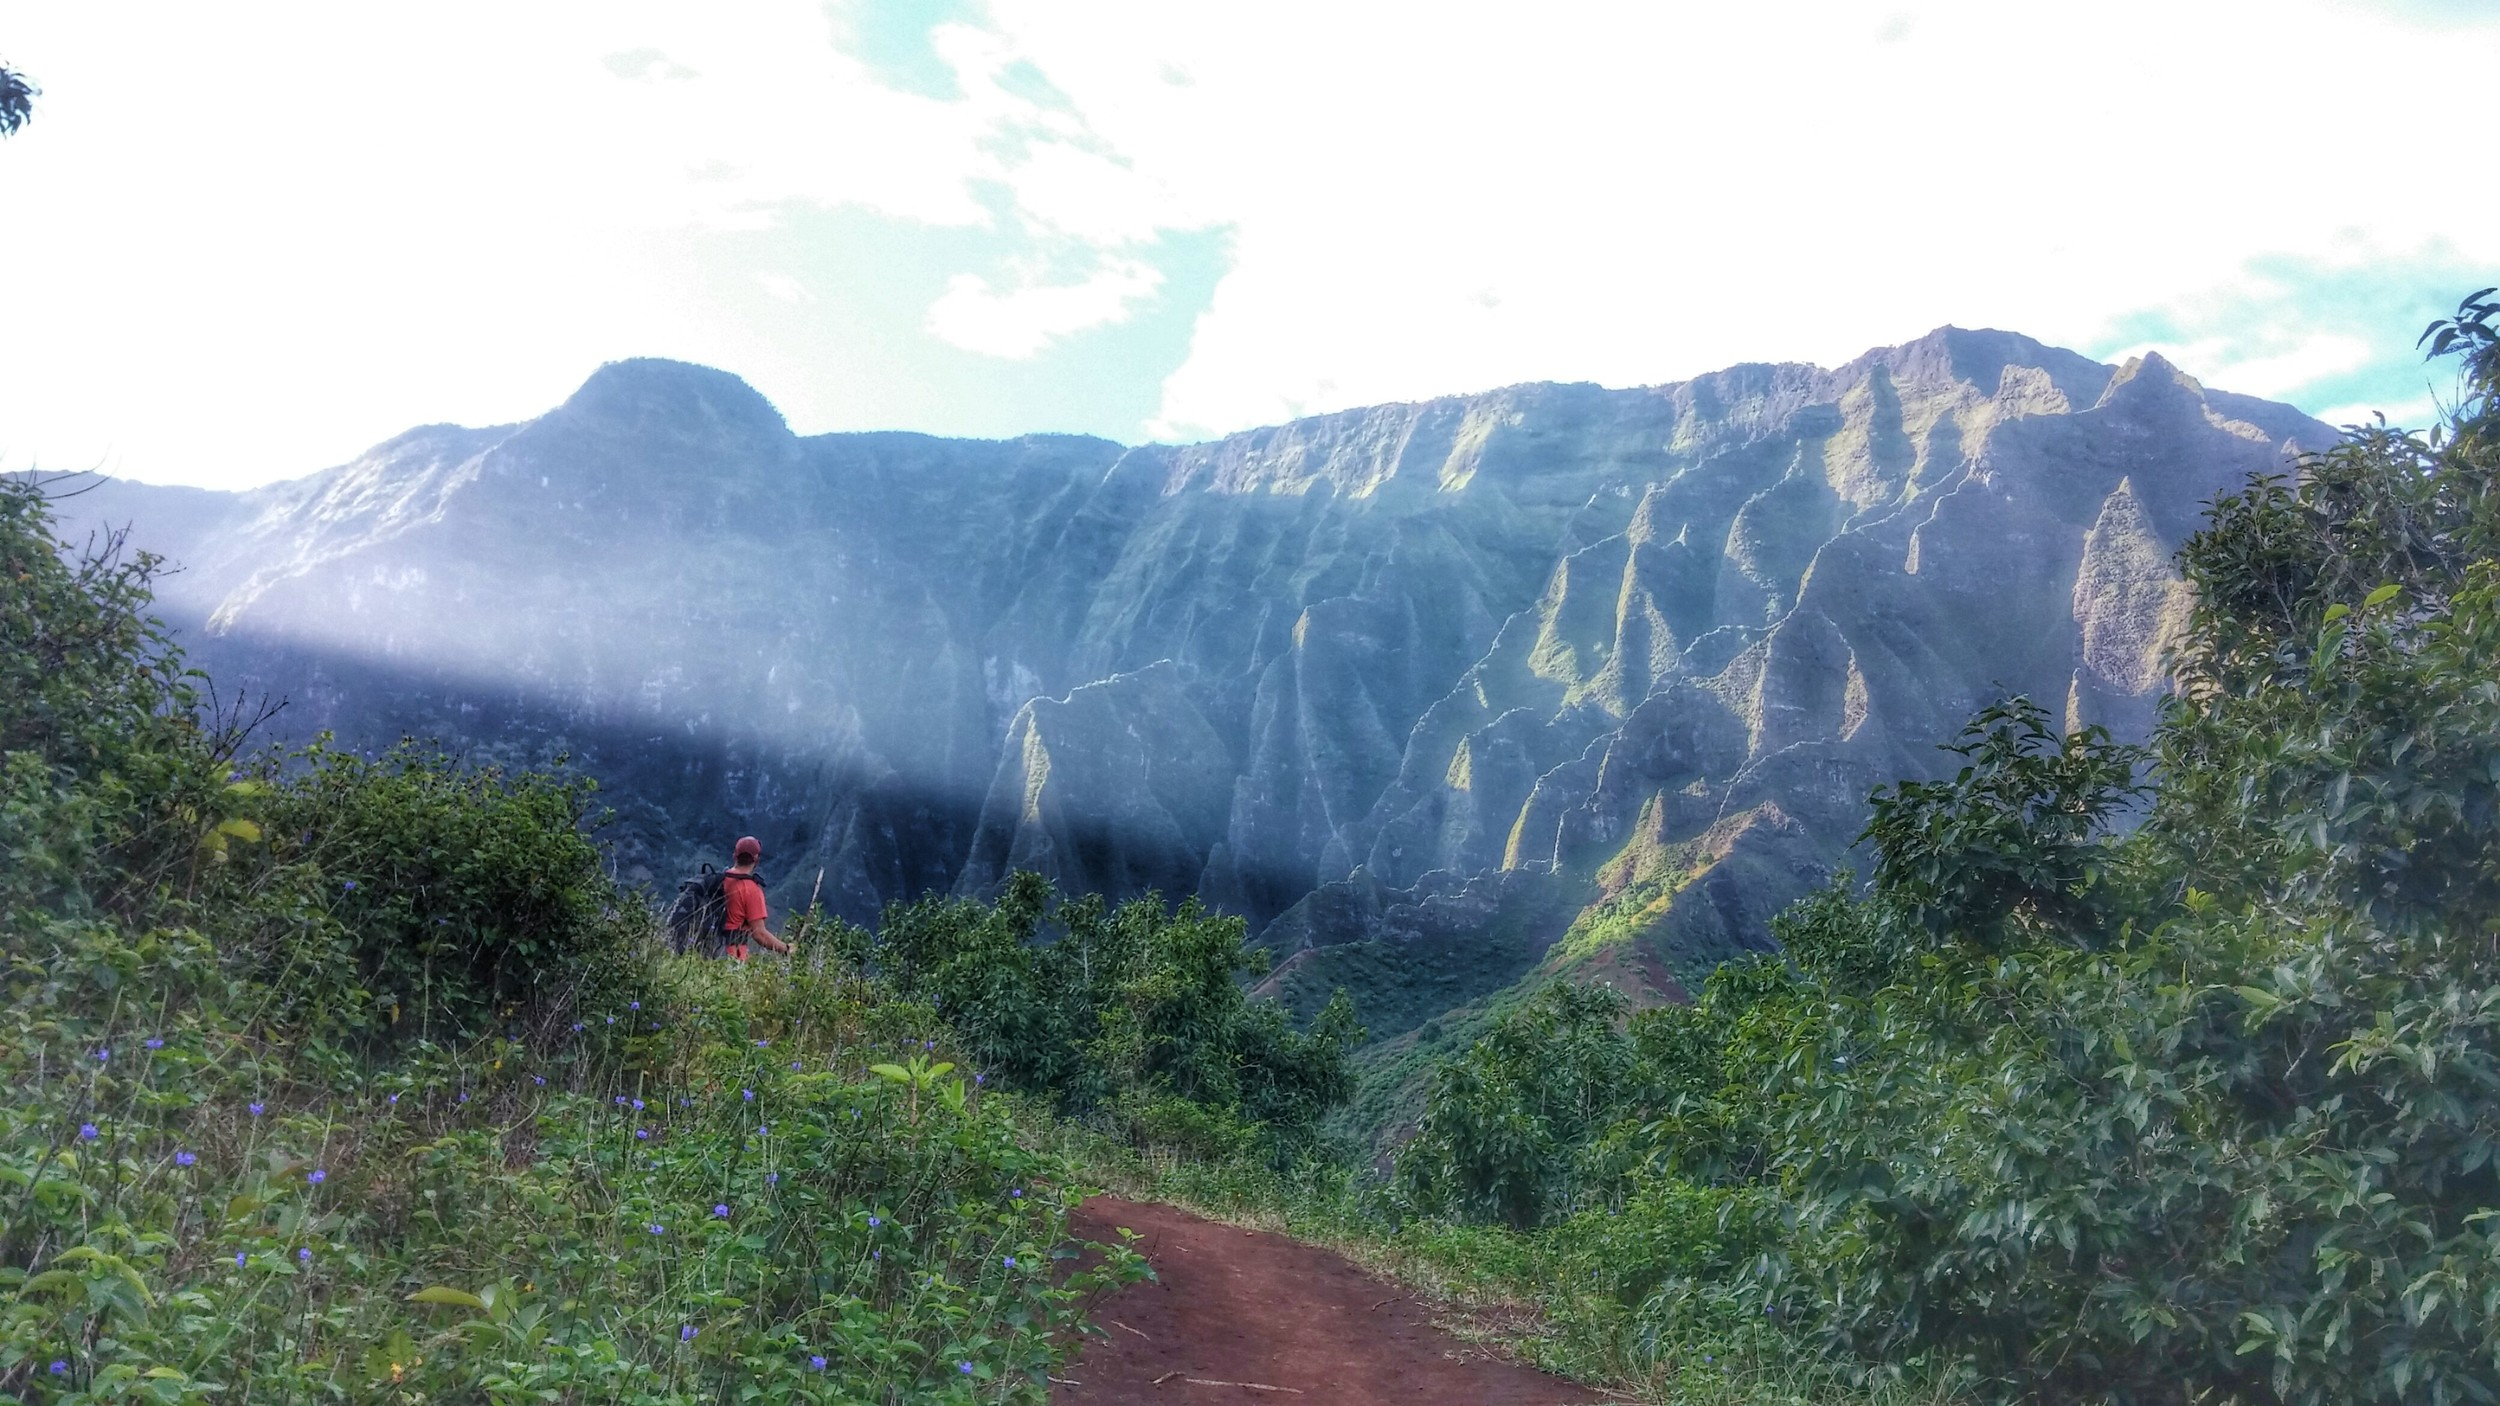 Last view of Kalalau Valley. Until next time!